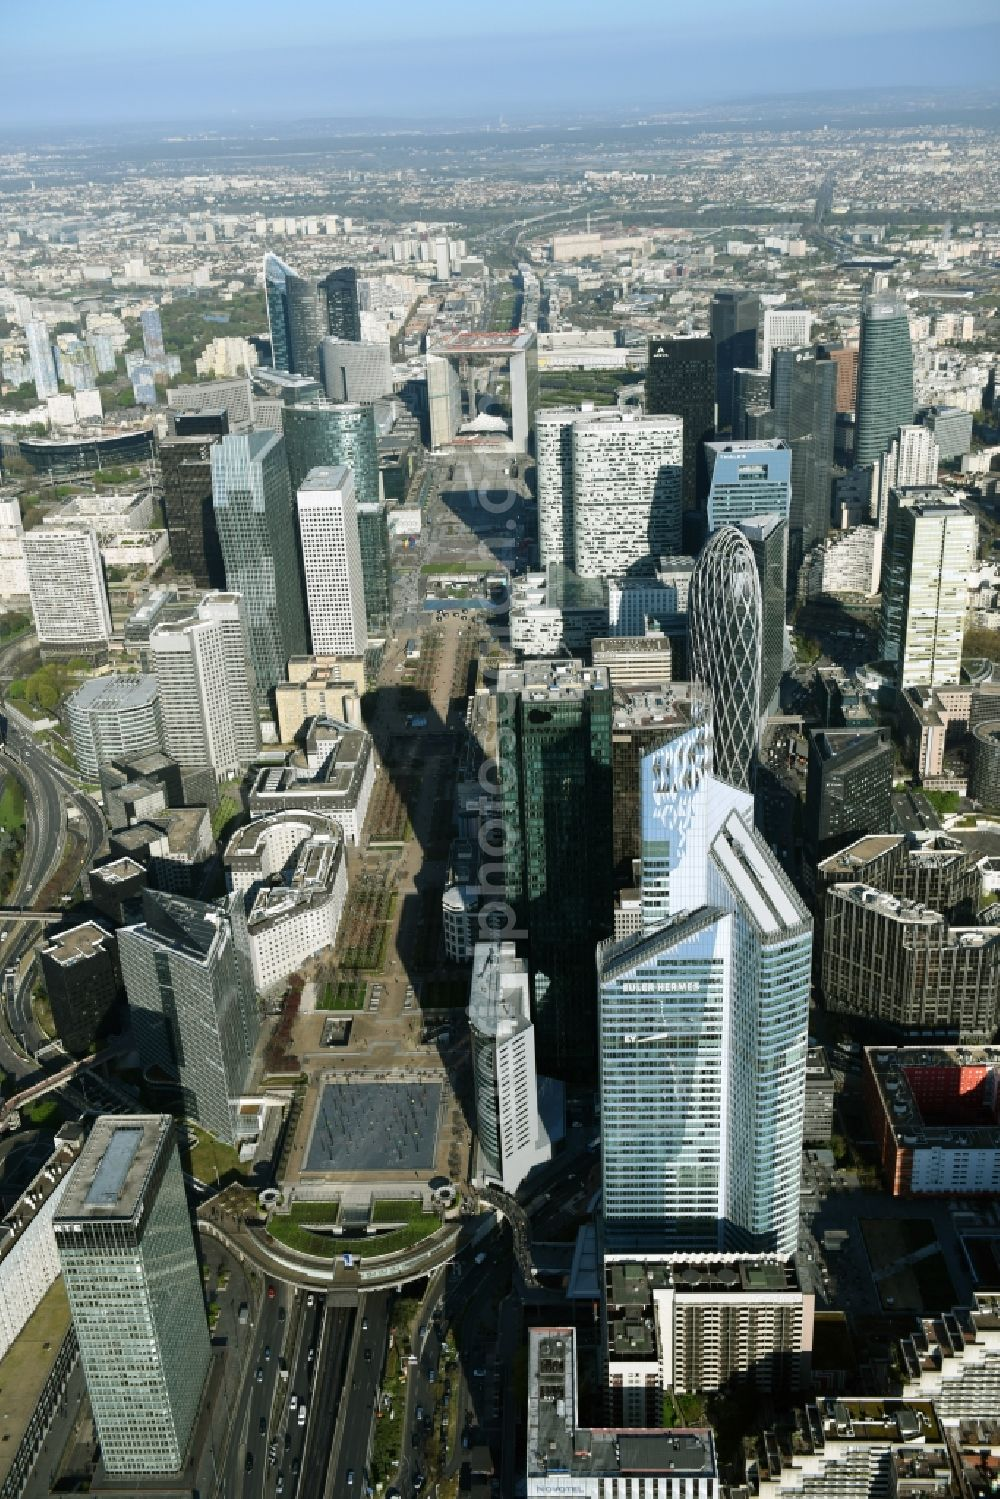 Aerial image Paris - La Defense- City center with the skyline in the downtown area in Paris in Ile-de-France, France